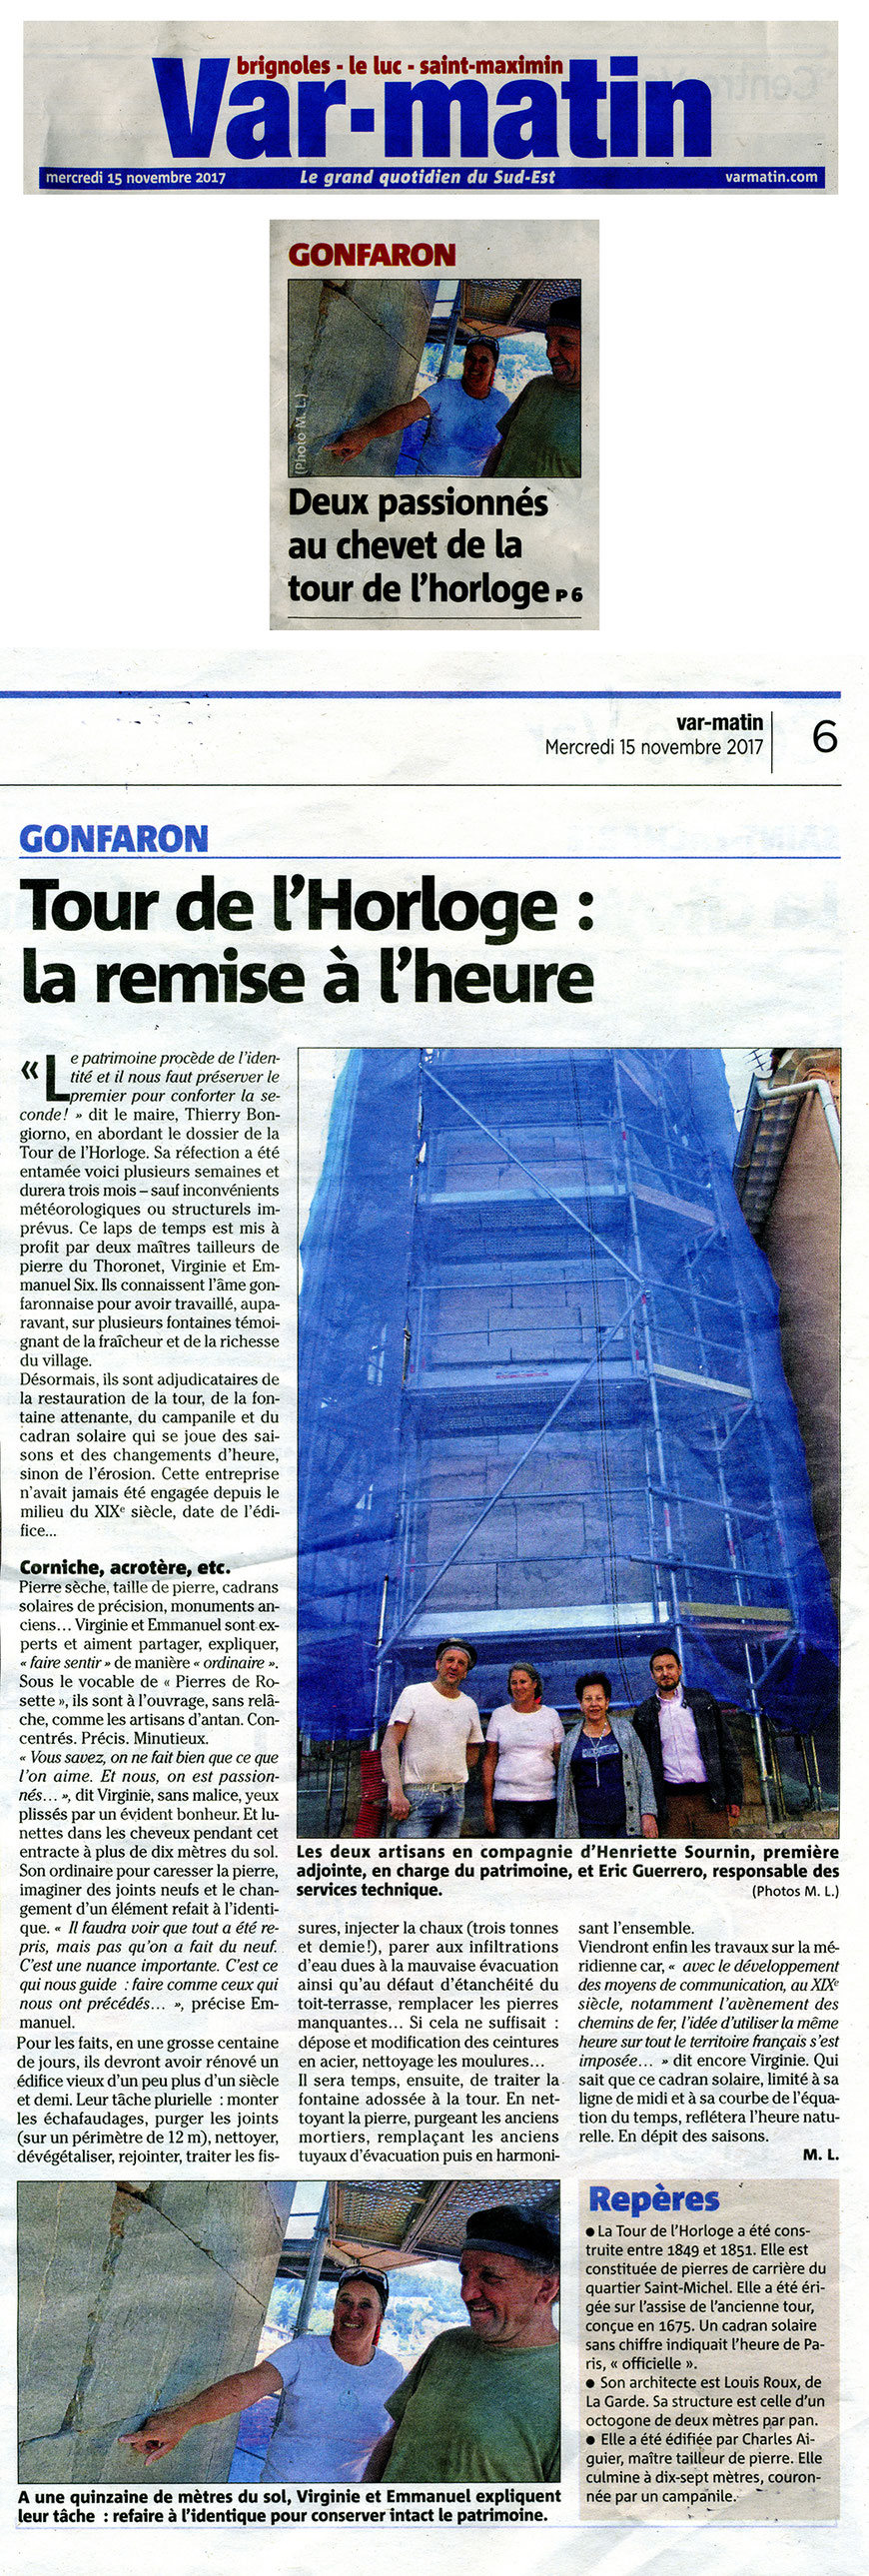 article-restauration-tour-horloge-gonfaron-pierre-monument-var-matin